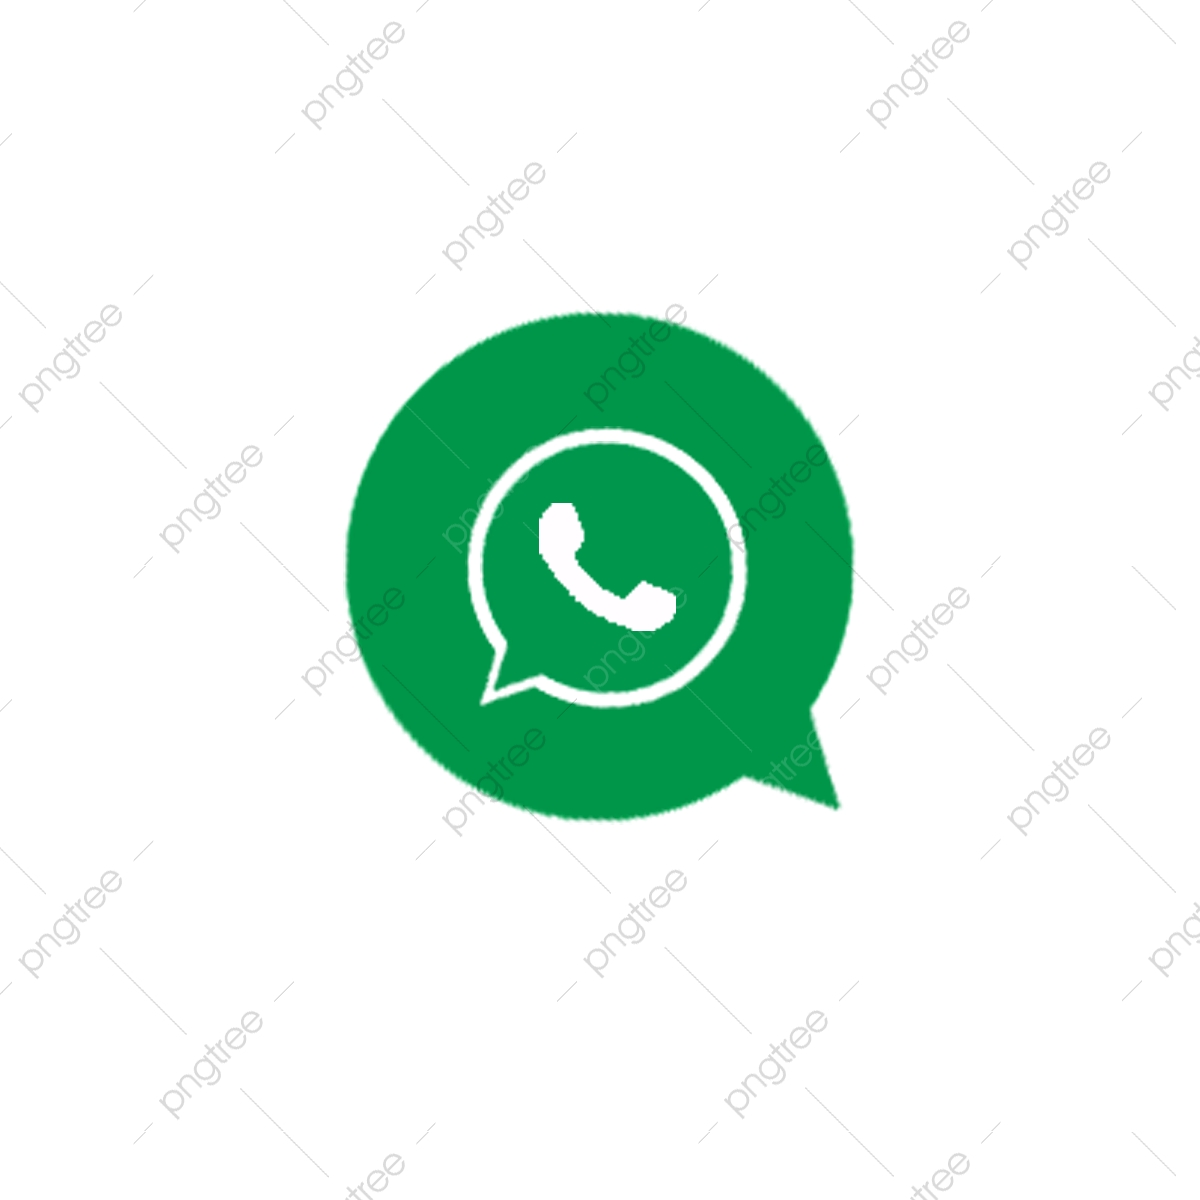 Whatsapp Logo Png Images Vector And Psd Files Free Download On Pngtree